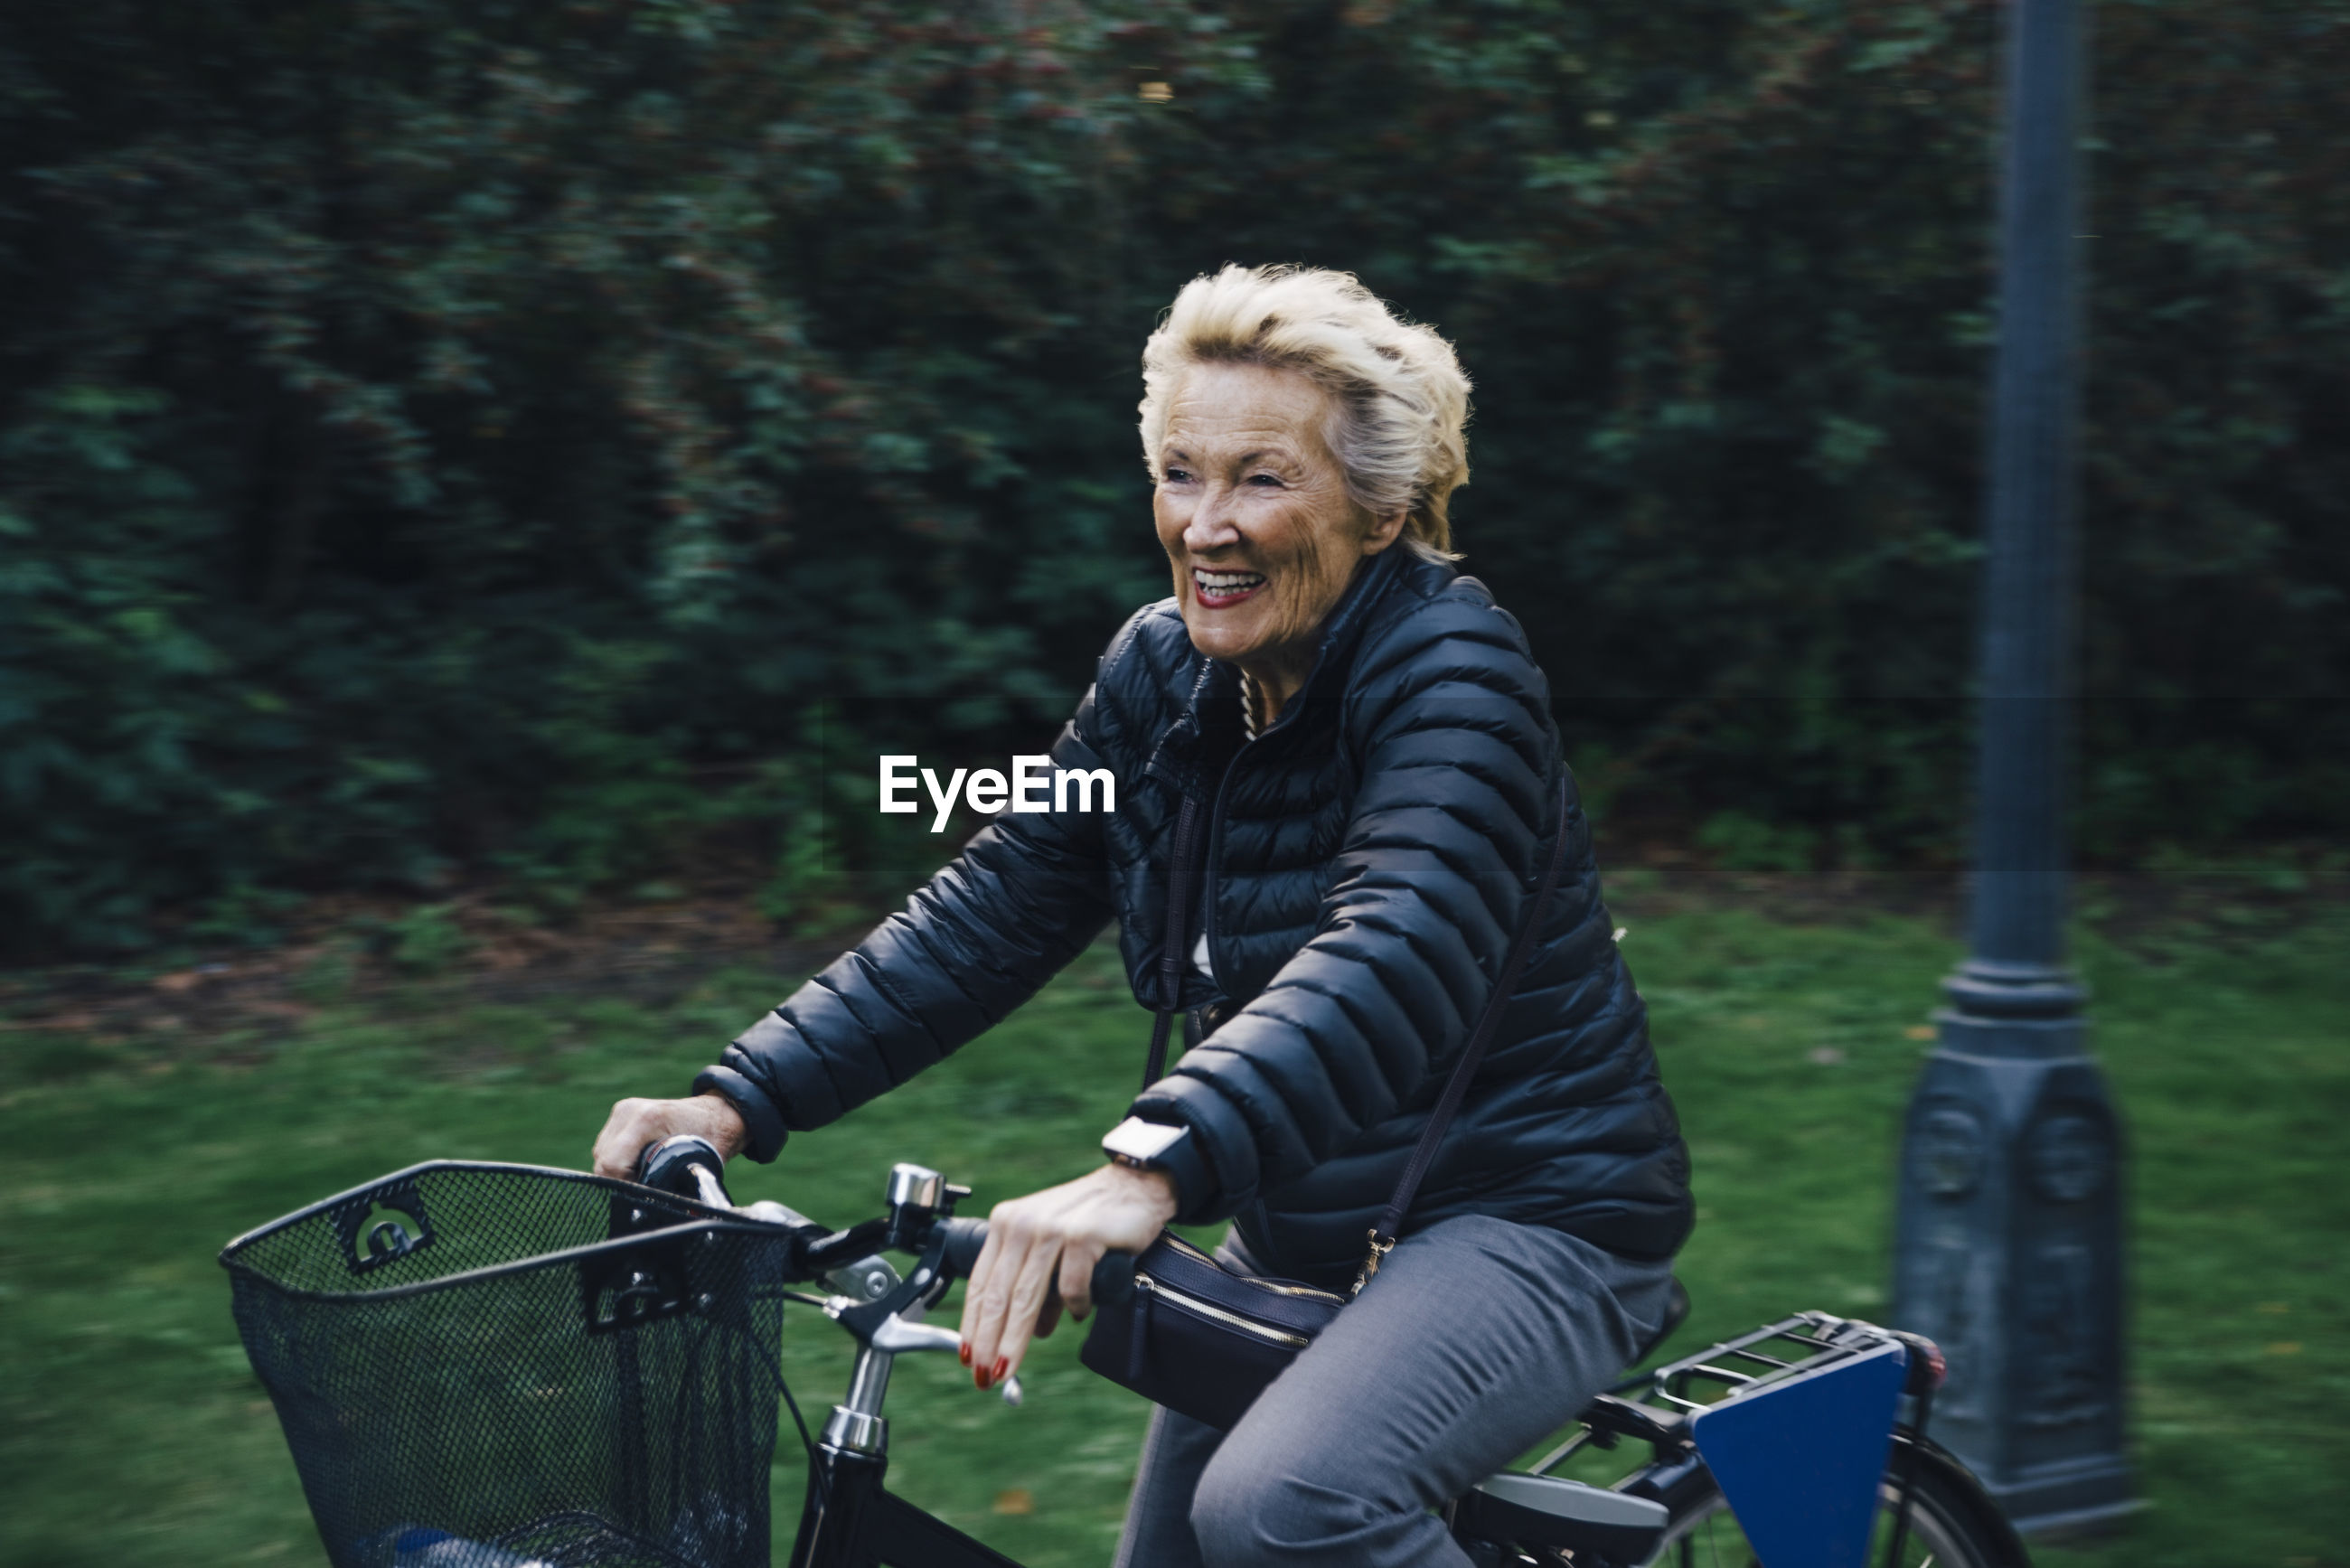 Smiling senior woman riding bicycle in park